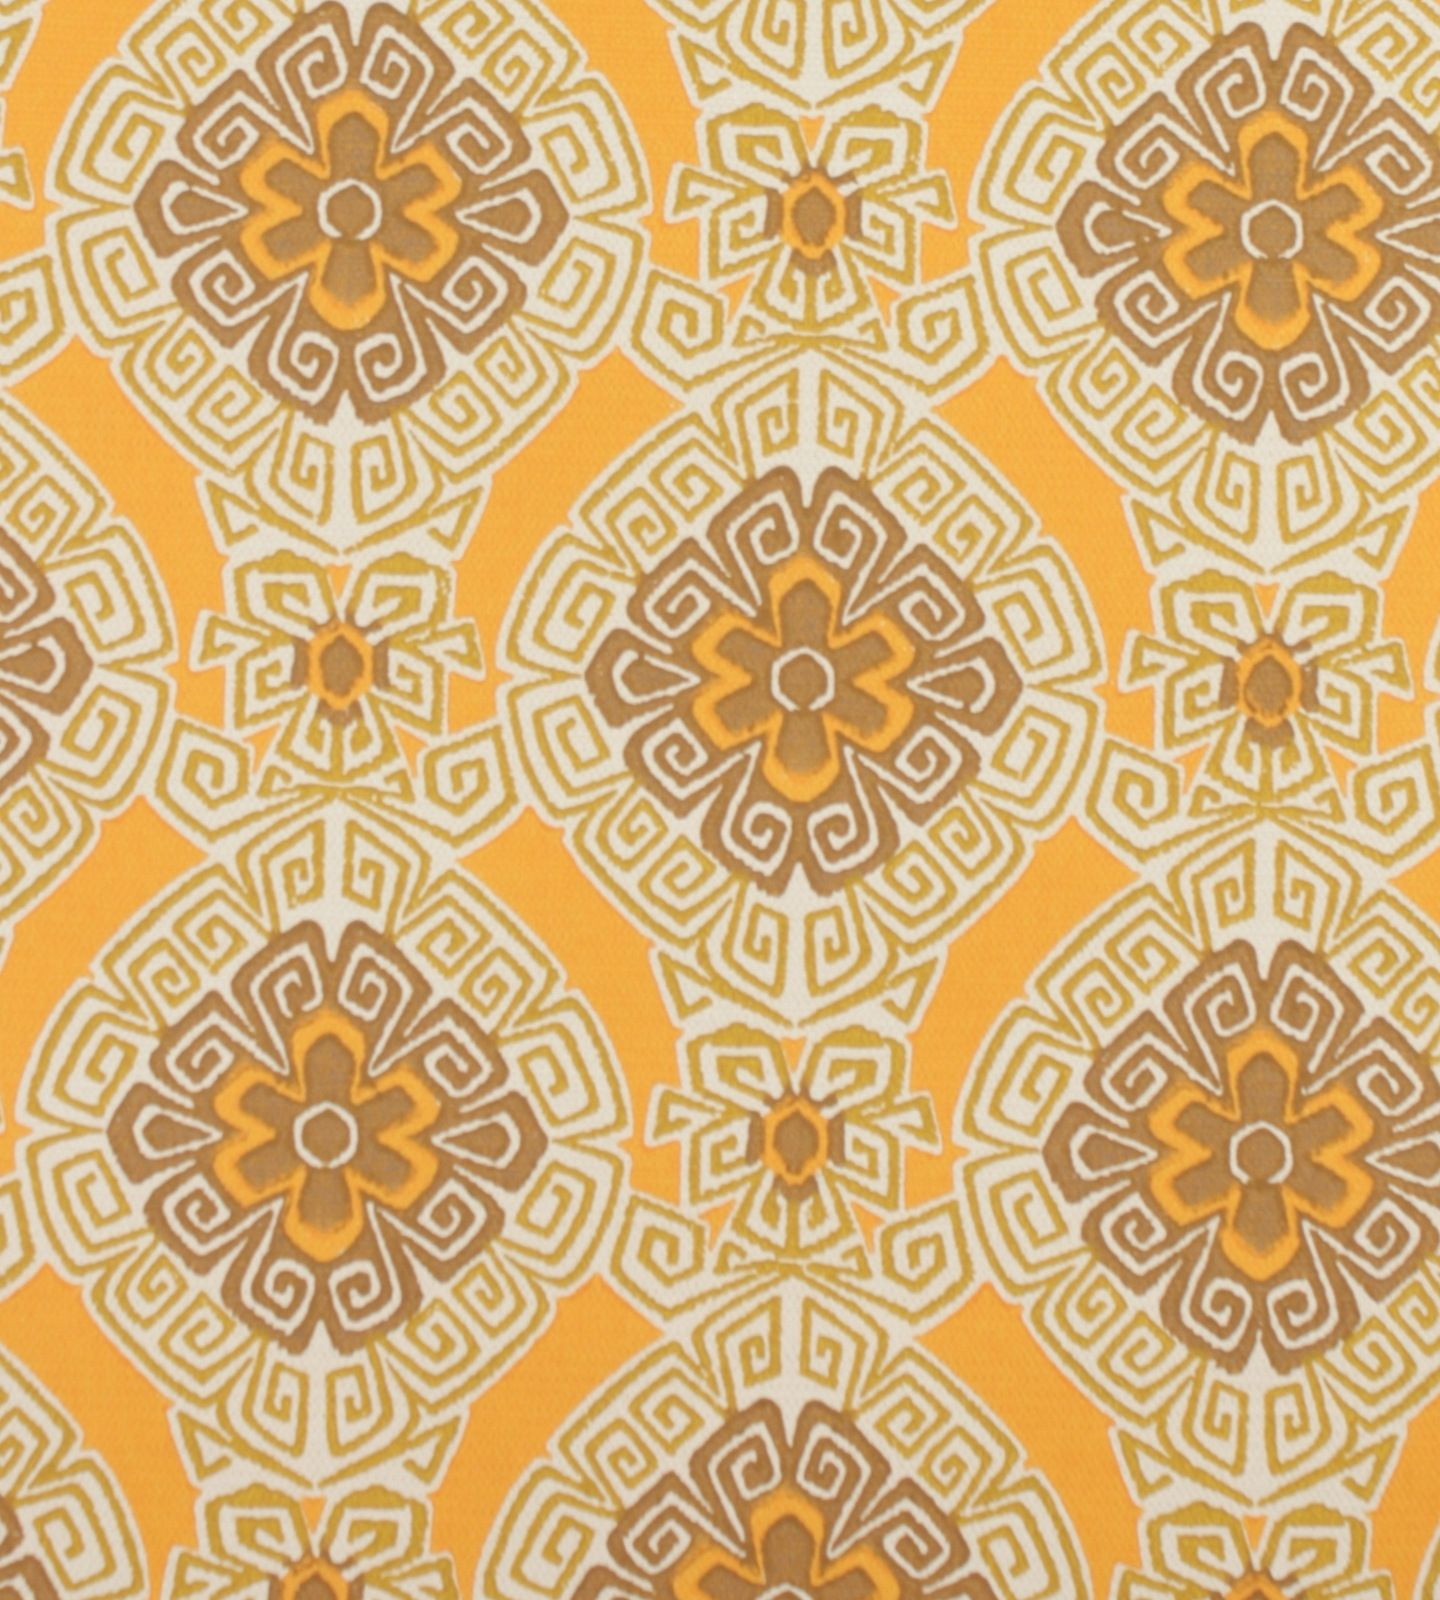 72 retro behang patronen wallpapers pictures victoriaanse vintage groen bloemen behang - Driedimensionale spiegel ...